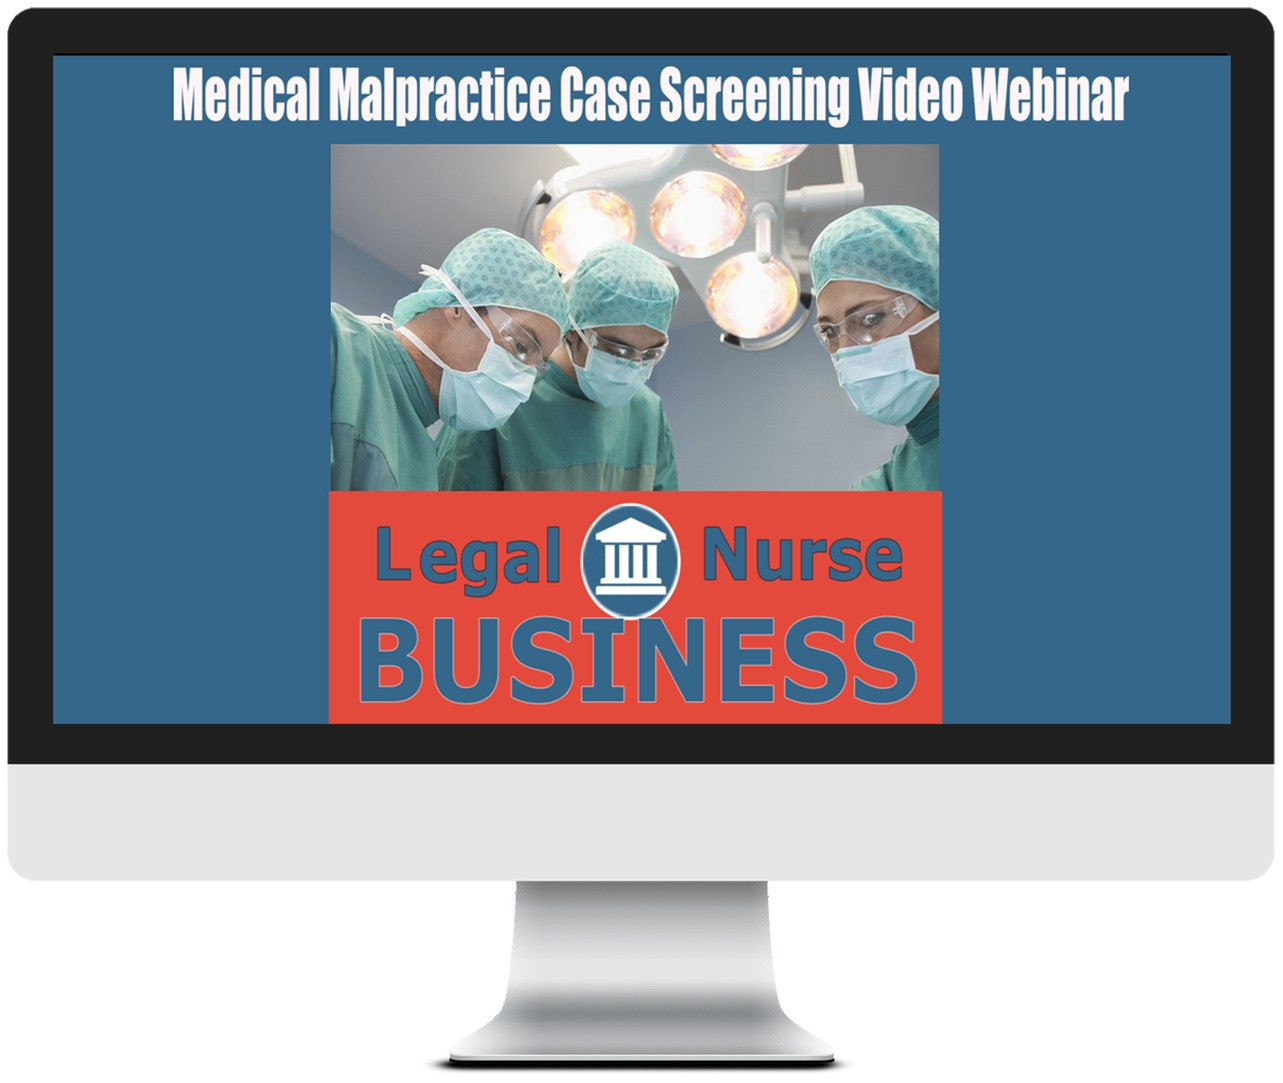 Medical malpractice LNC case screening